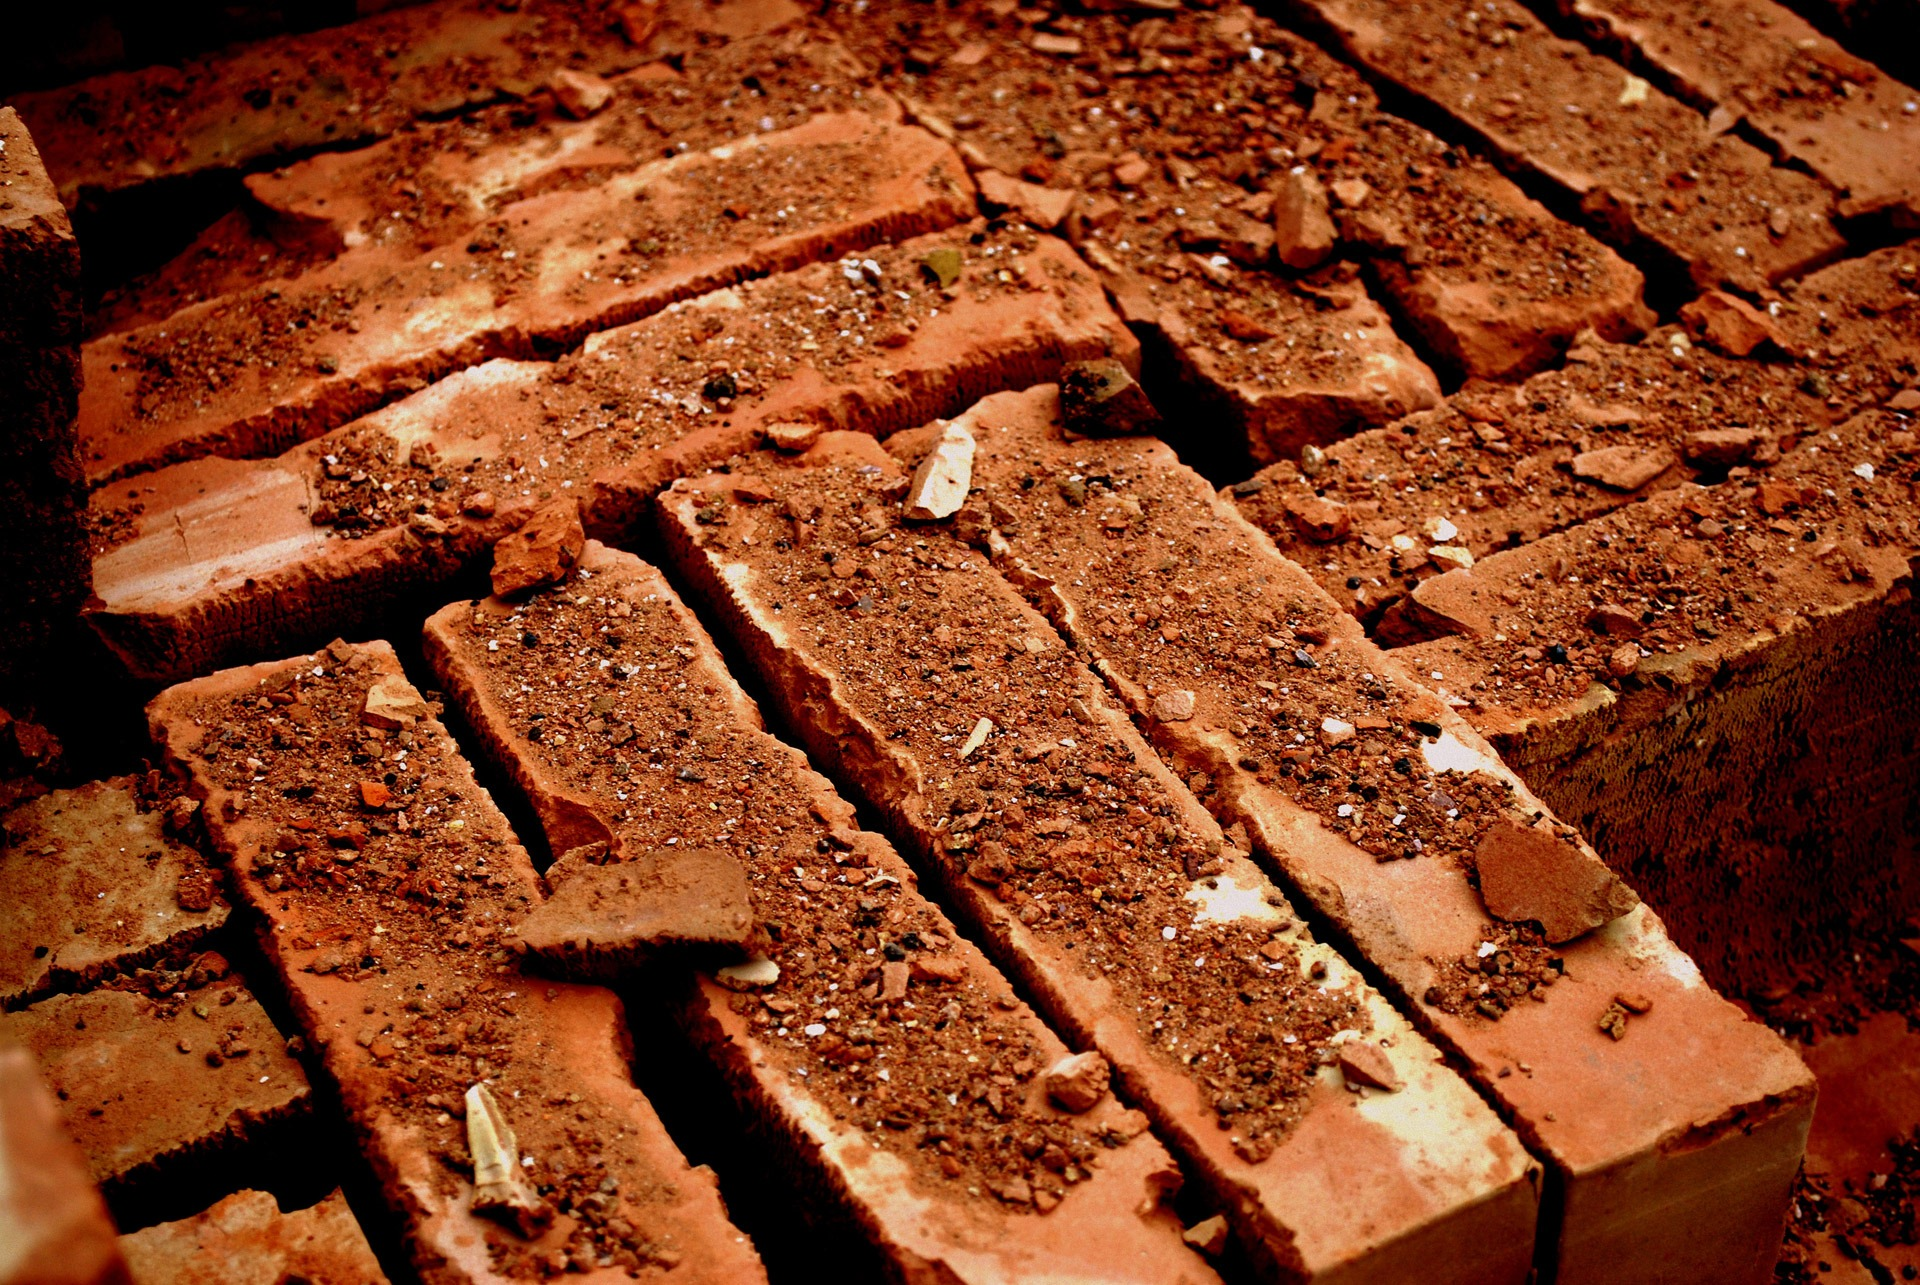 A pile of worn bricks covered in dust and chips of other bricks.